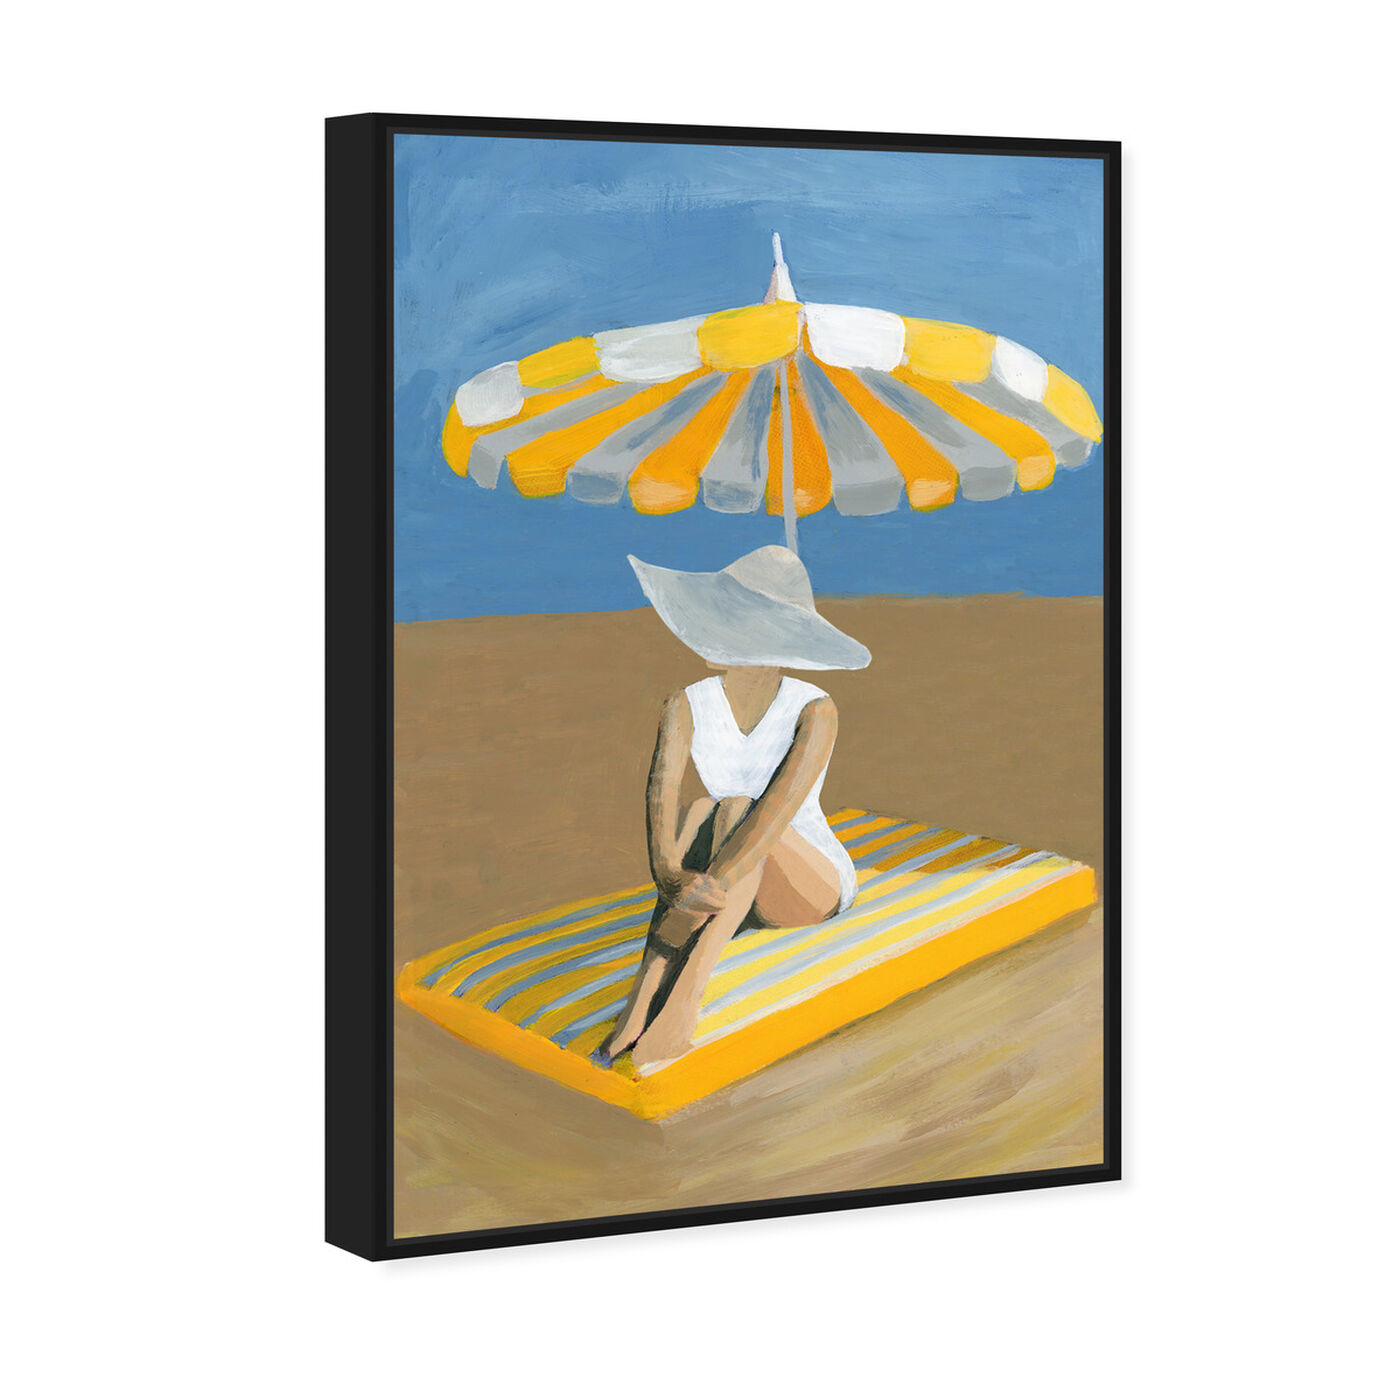 Angled view of Yellow Umbrella featuring fashion and glam and swimsuit art.